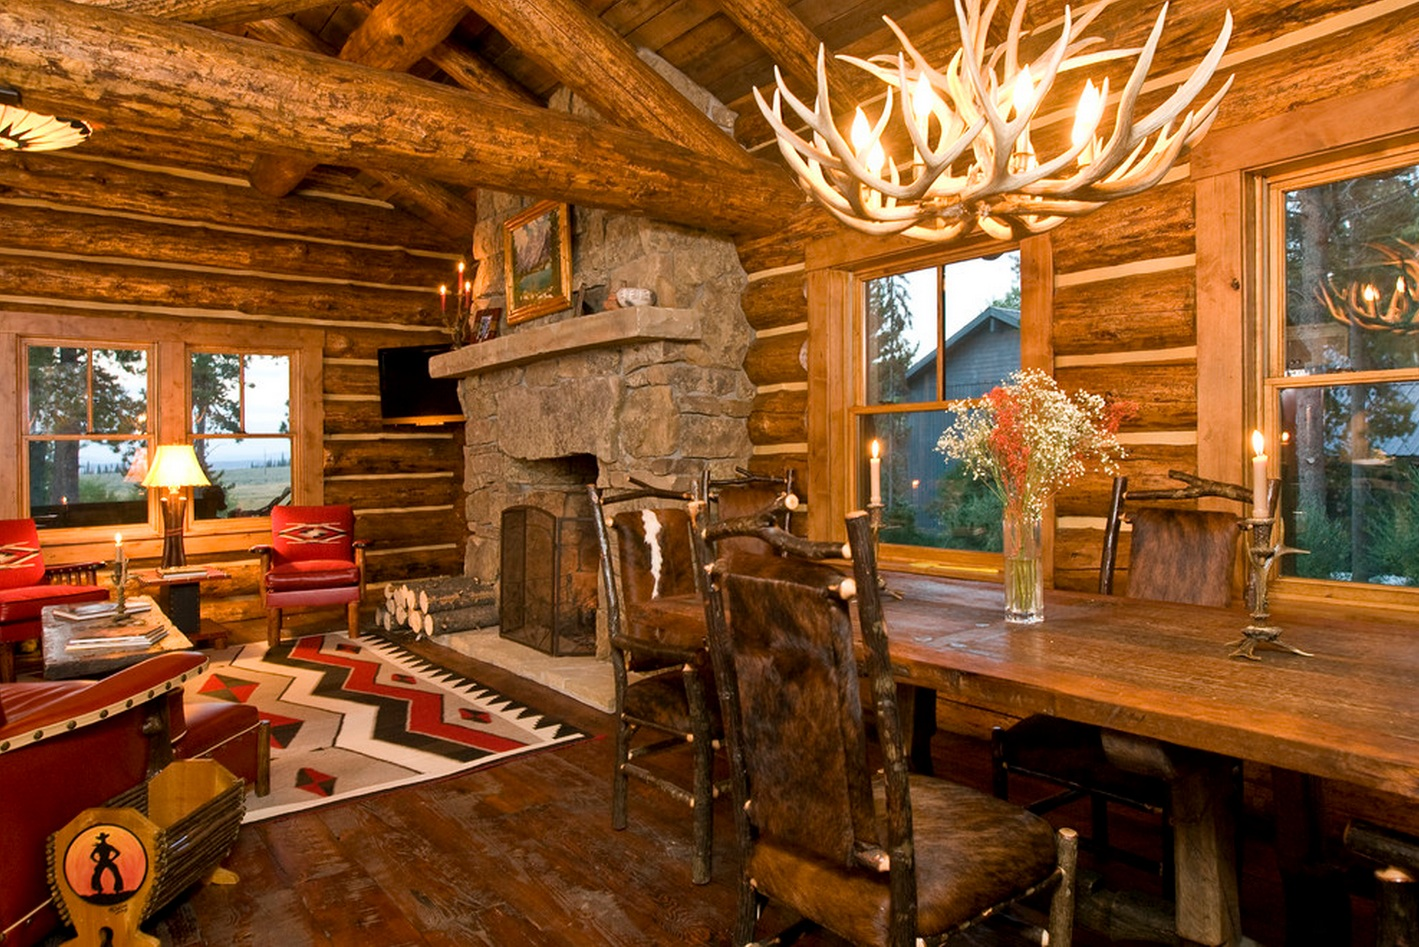 Cute & Cosy Cabin: Beautifully Warm Home Has Traditional